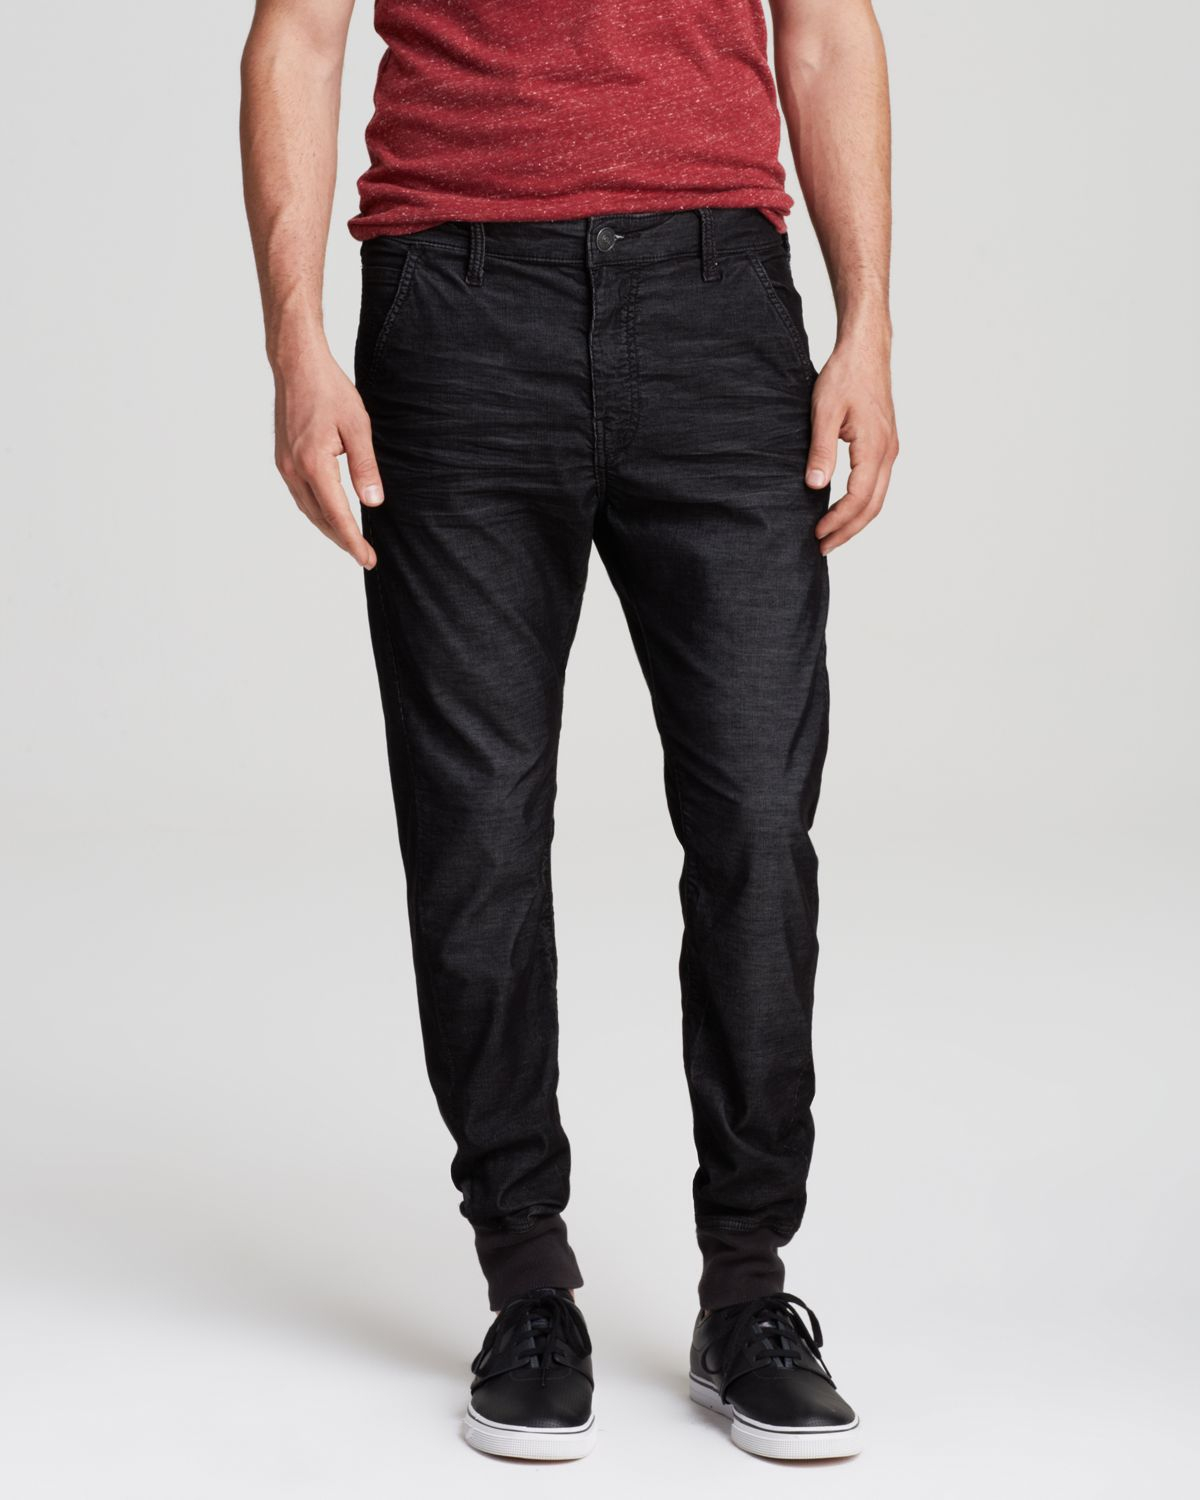 True religion Jeans - Corduroy Runner Relaxed Fit In Black ...